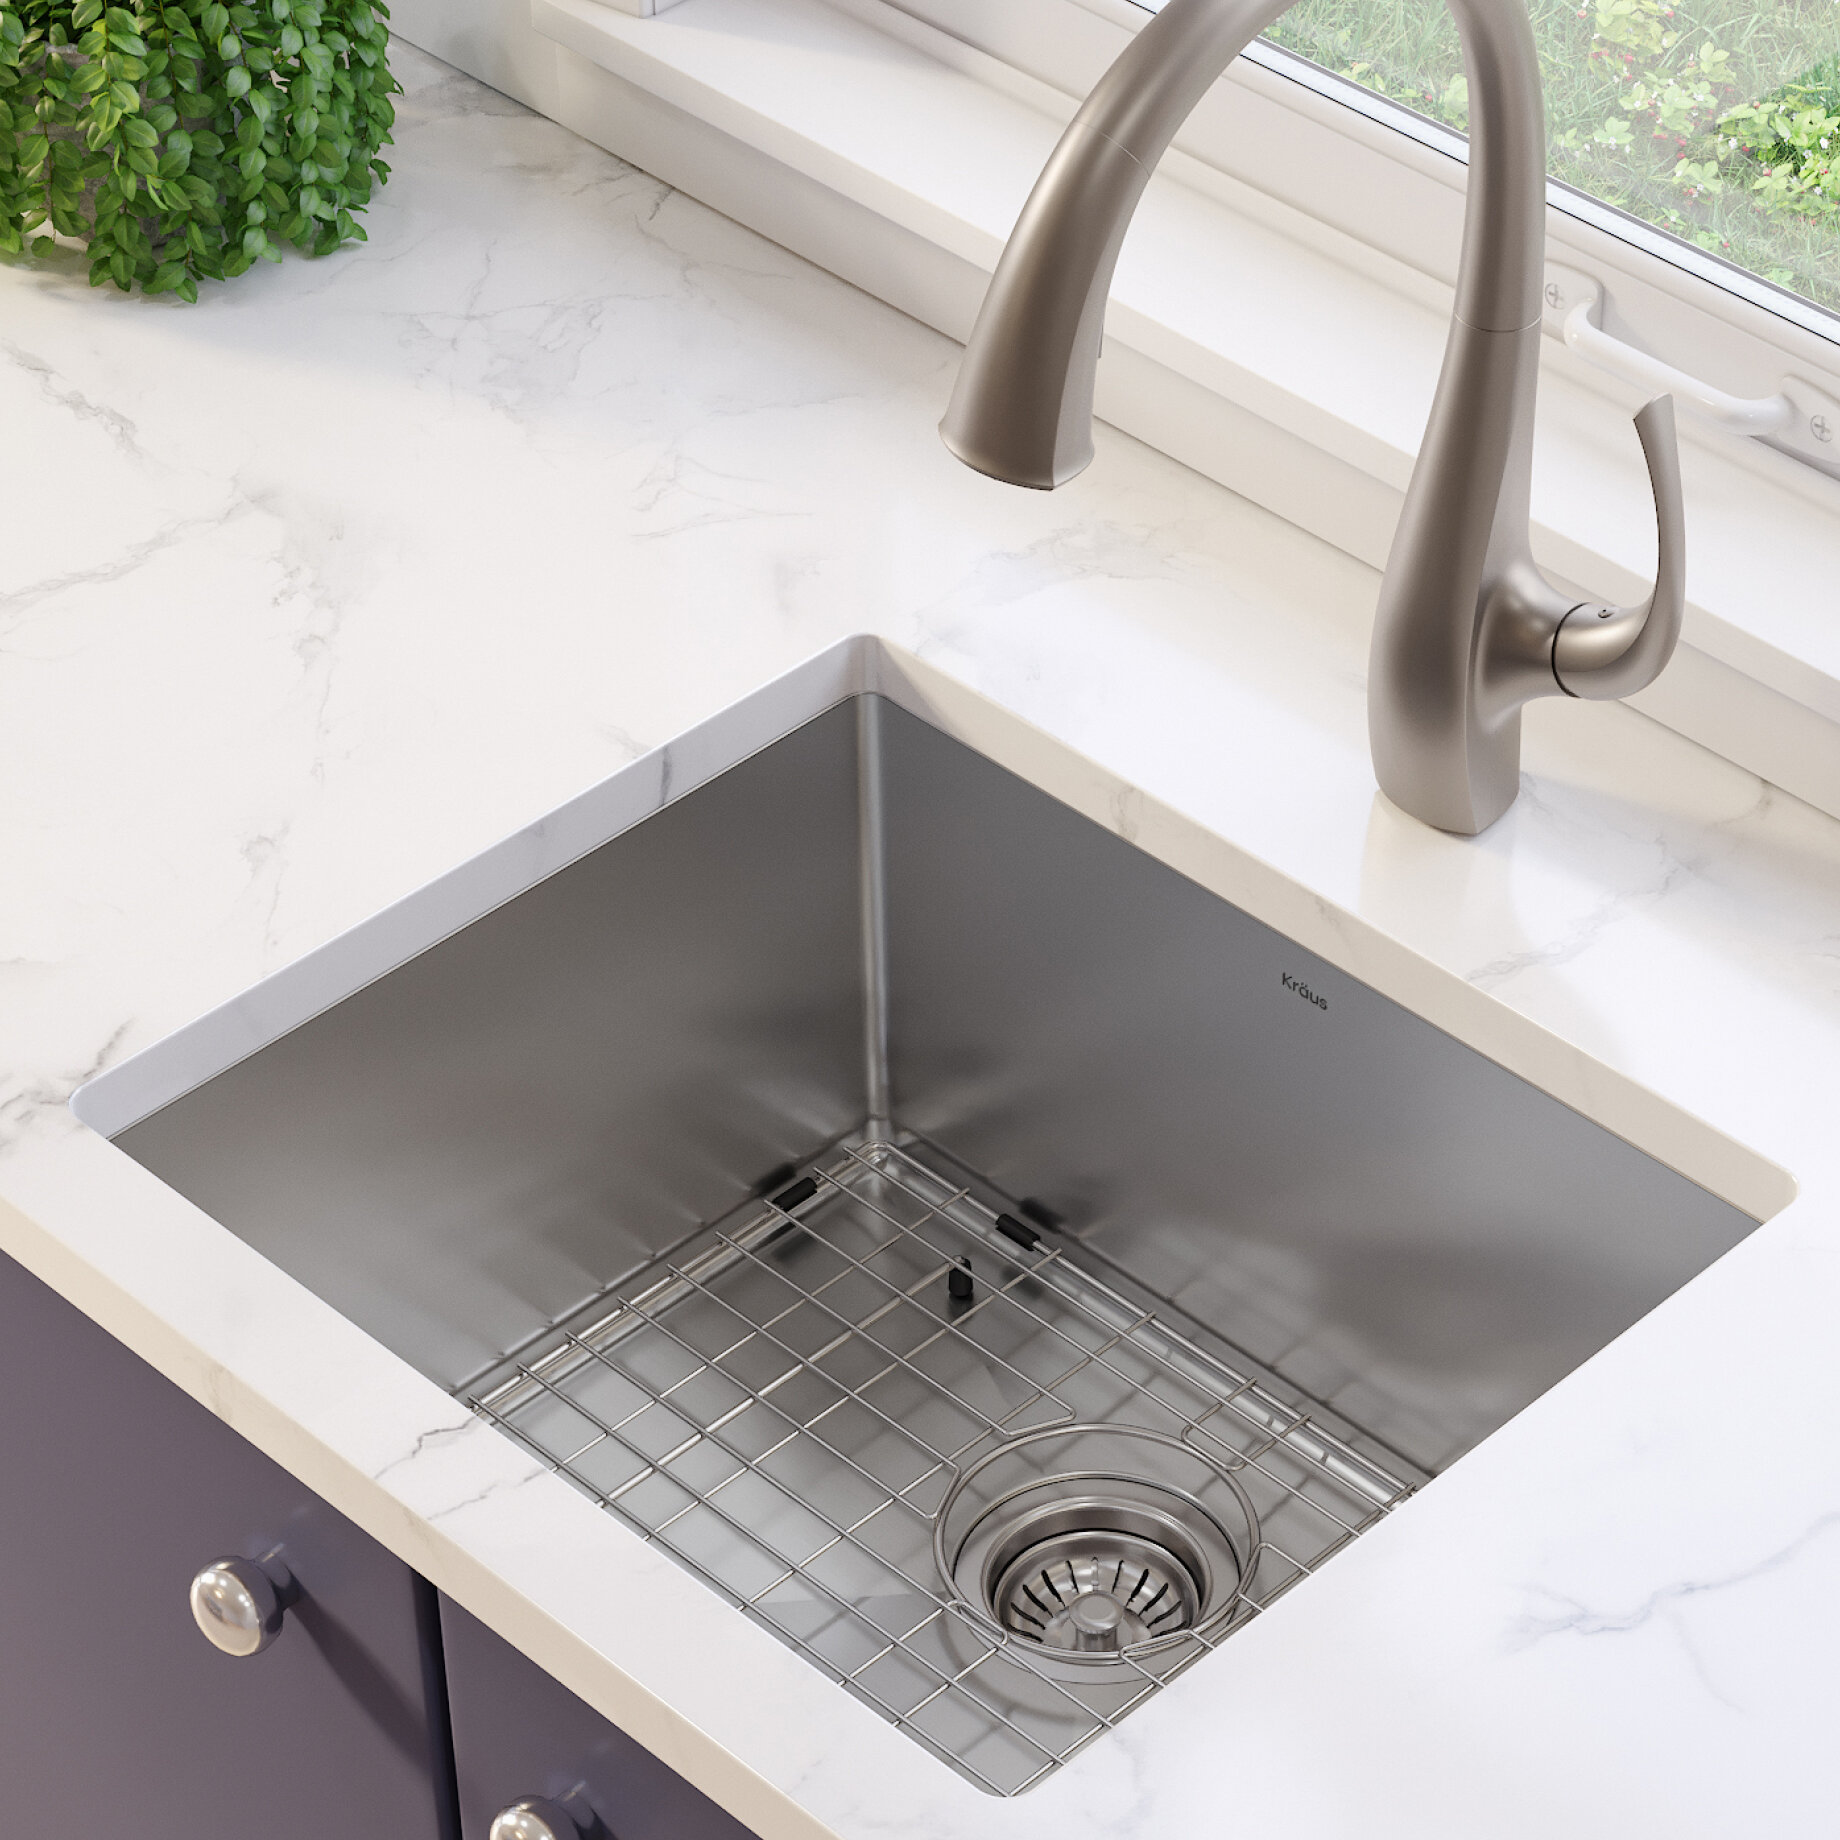 Khu101 21 Standart Pro 16 Gauge X 18 Undermount Kitchen Sink With Bottom Grid Drain Embly And Cap